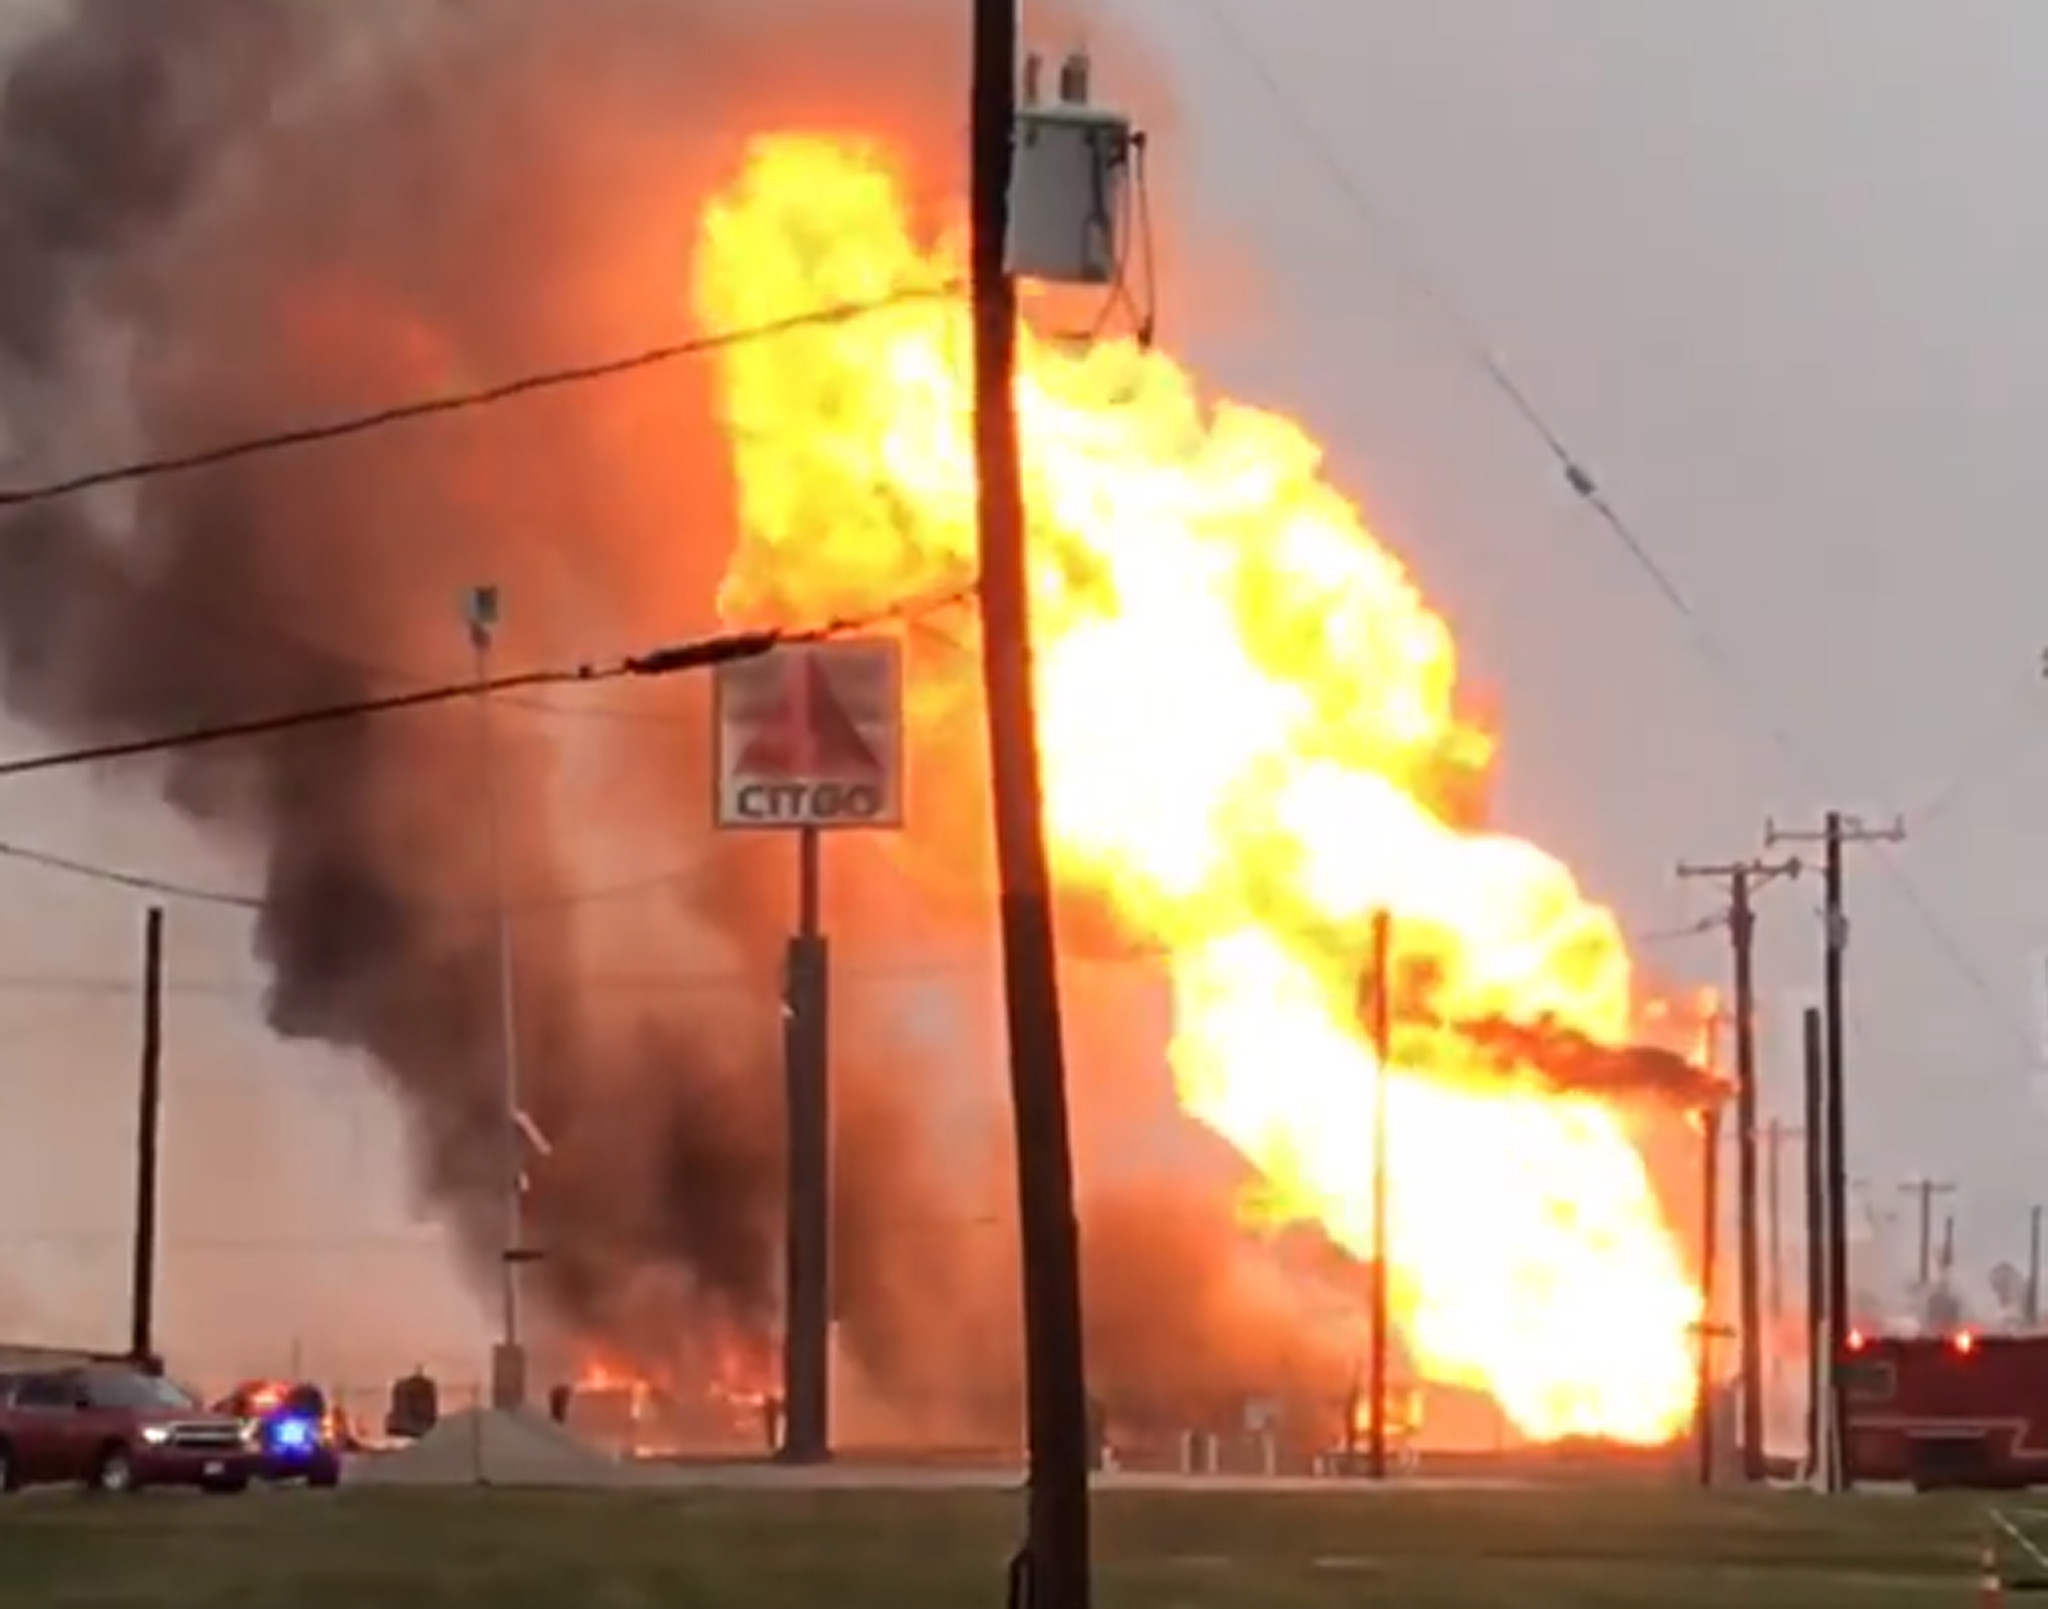 Gas line rupture sparks massive fire in Texas